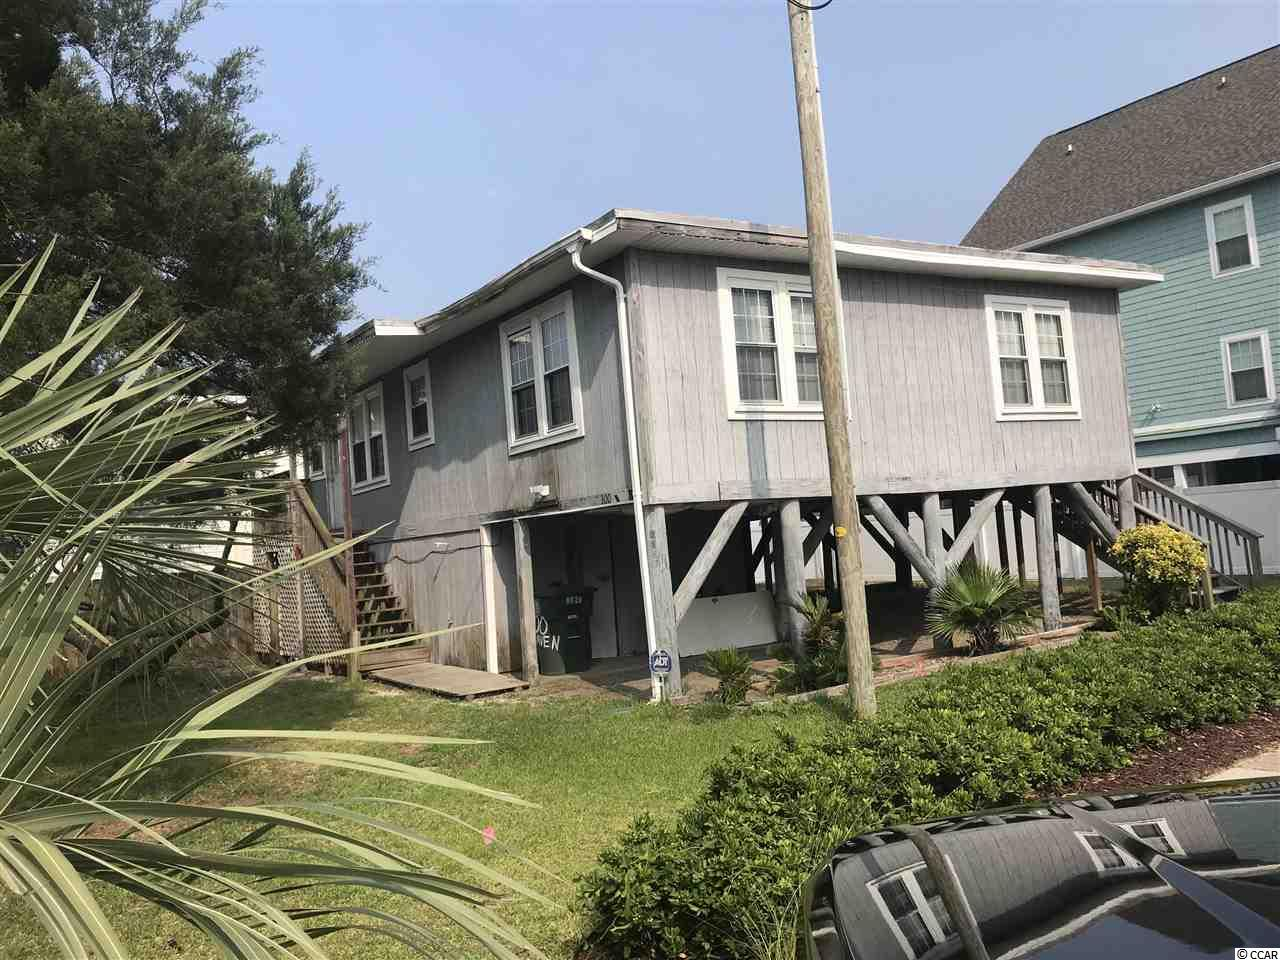 Affordable Beach Retreat in the family friendly Cherry Grove Beach! This raised beach home is a fixer uppers dream! Home features include 3 bedrooms, 1 full bath, solid real pine paneling, central heat and air, big front deck and only 1 1/2 blocks to the sparkling ocean! This is just the home you have been looking for at a price you may never find again! Don't wait, because this will not be on the market long! Home is sold as is and where is.